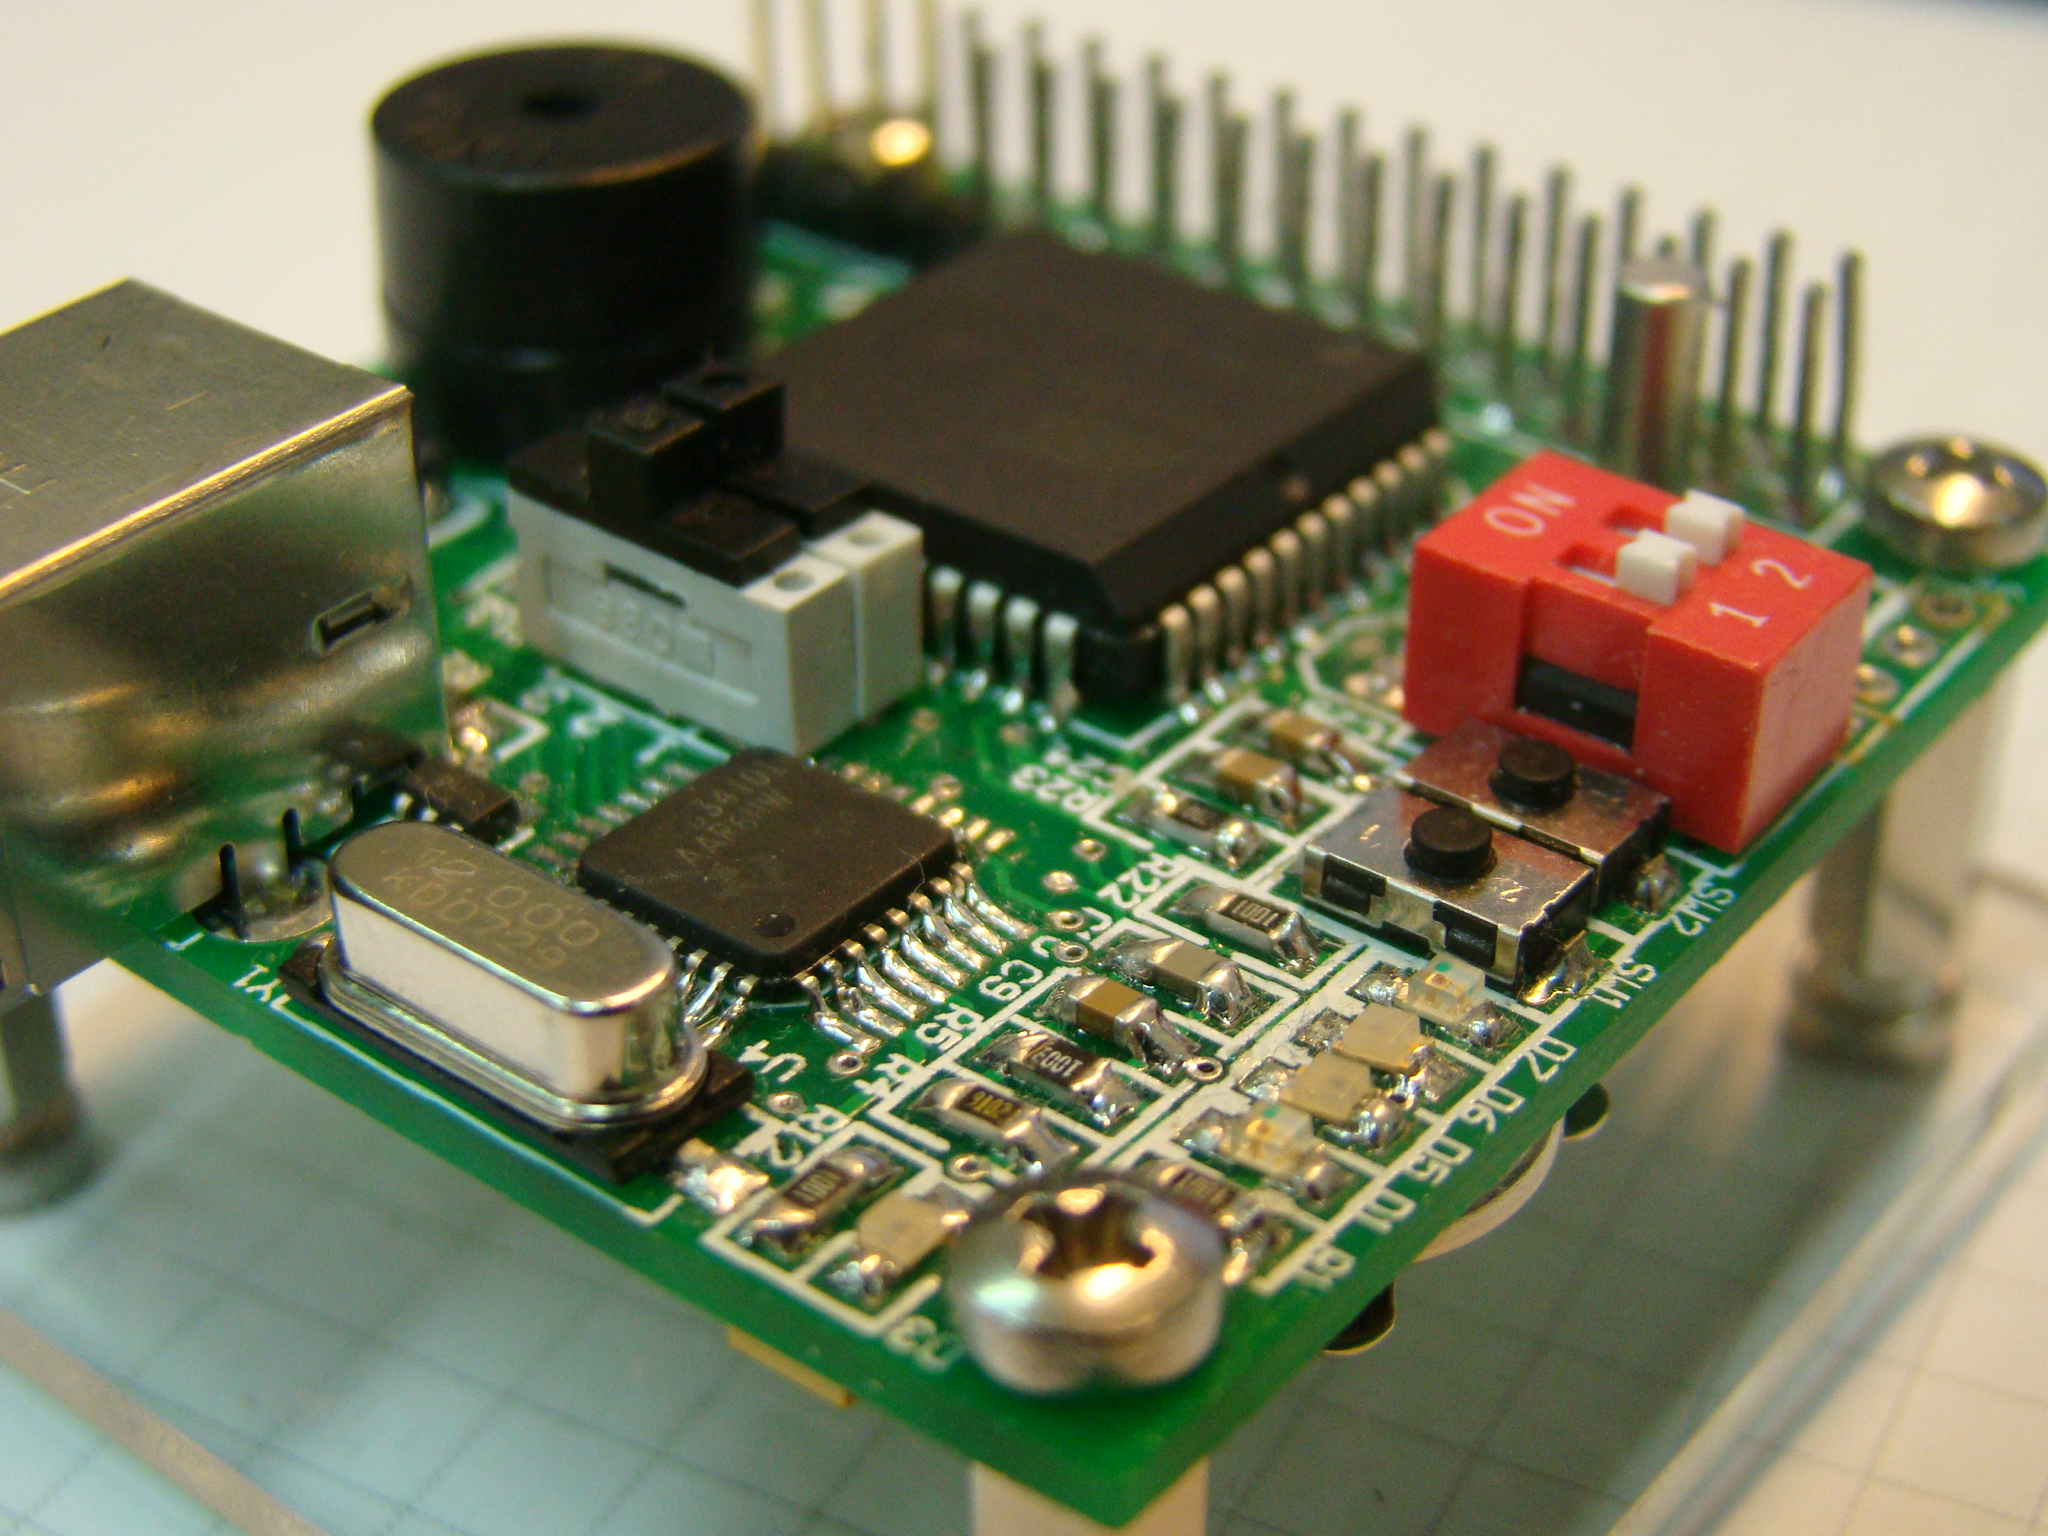 Dseta Board A Cpu Based On The Atmel At89c51re2 Usb To Serial Port Controller Tusb3410 Integrated Circuit Components Microcontroller